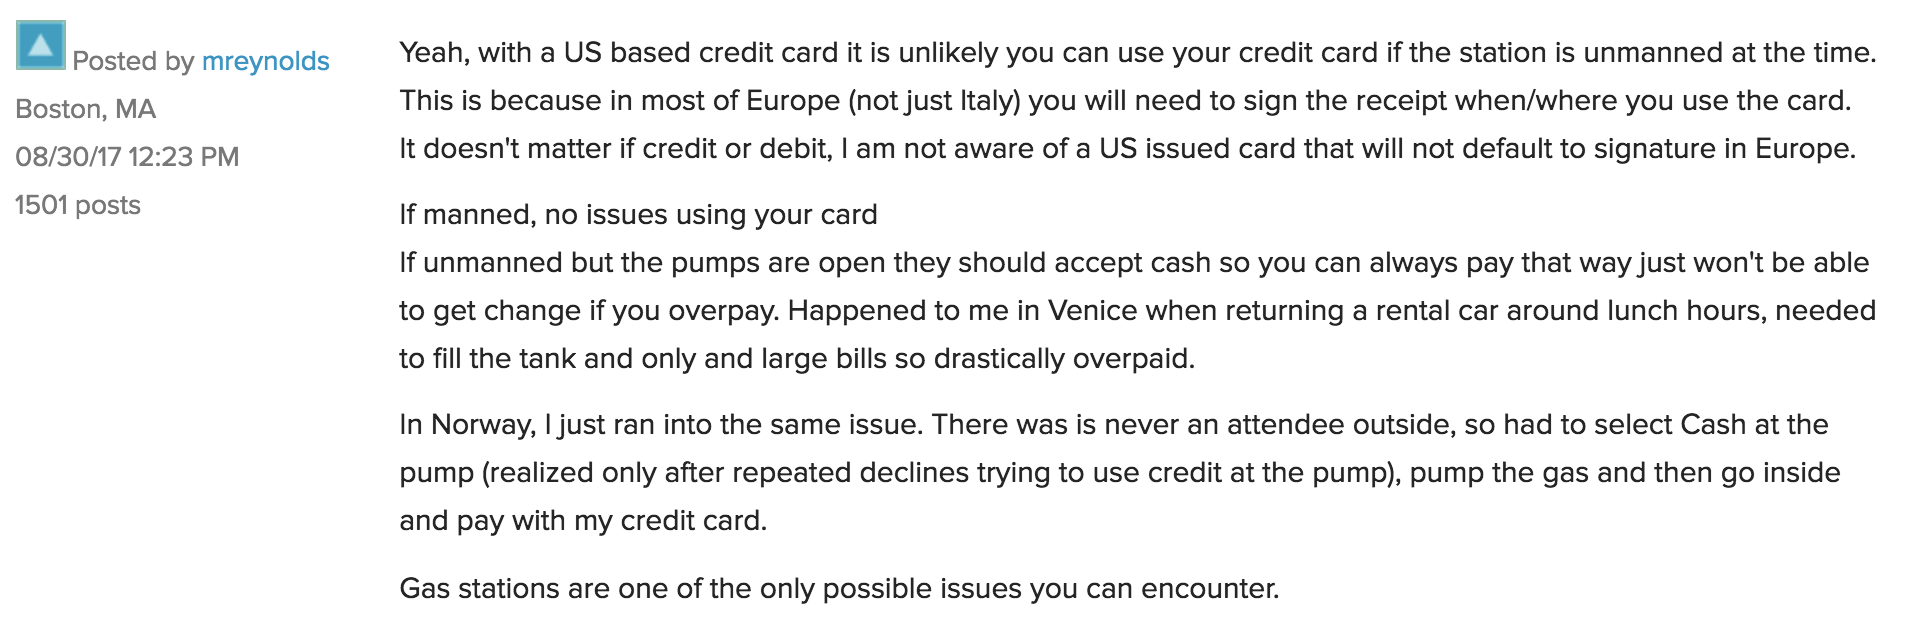 My Experience Using Credit Cards to Buy Gas in Europe